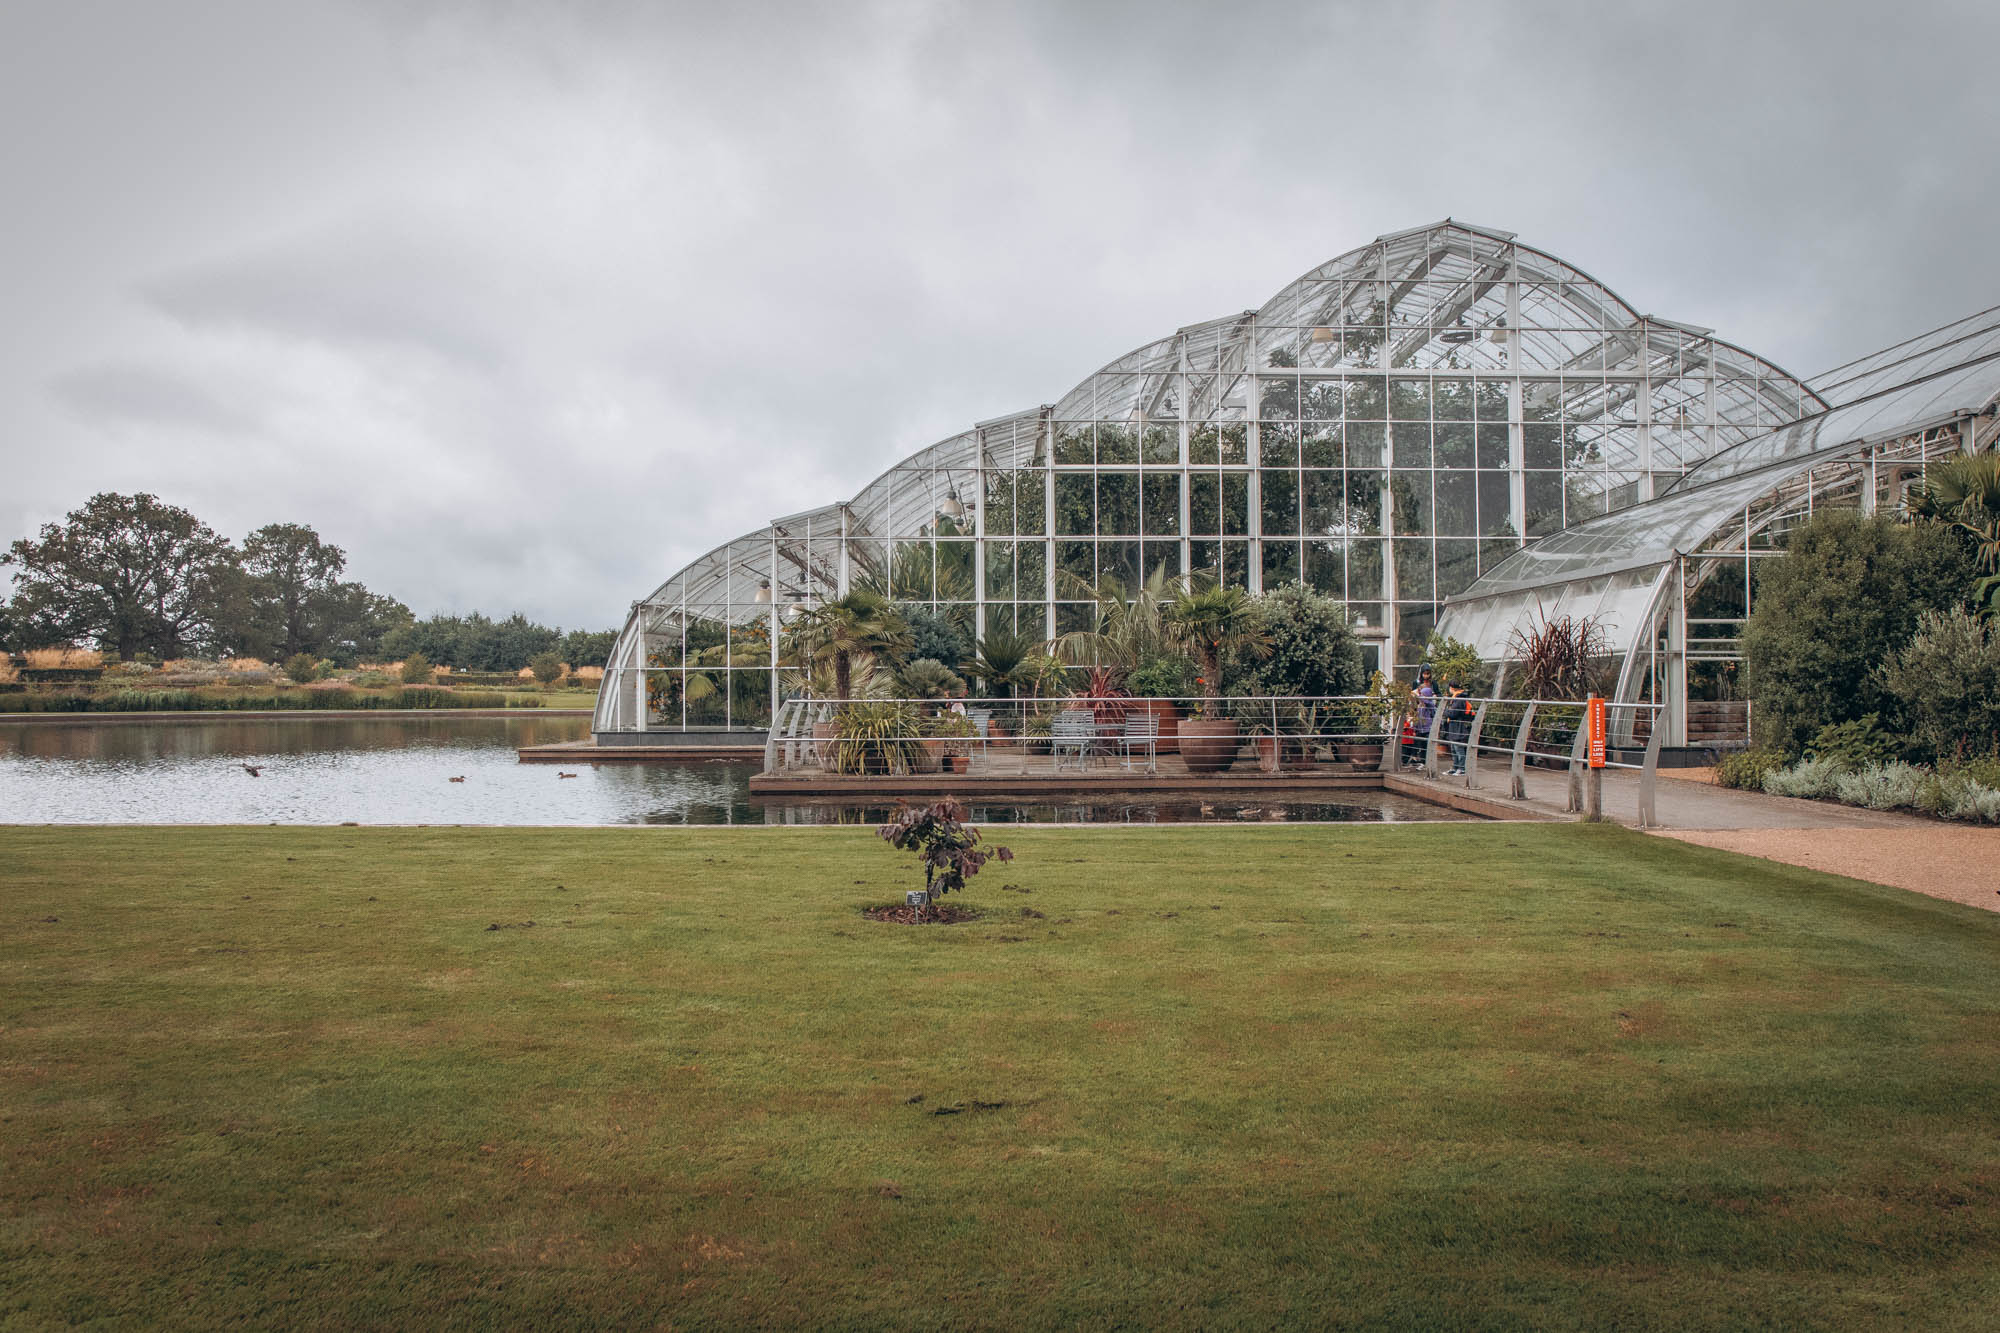 Outside view of The Glasshouse   RHS Garden Wisley